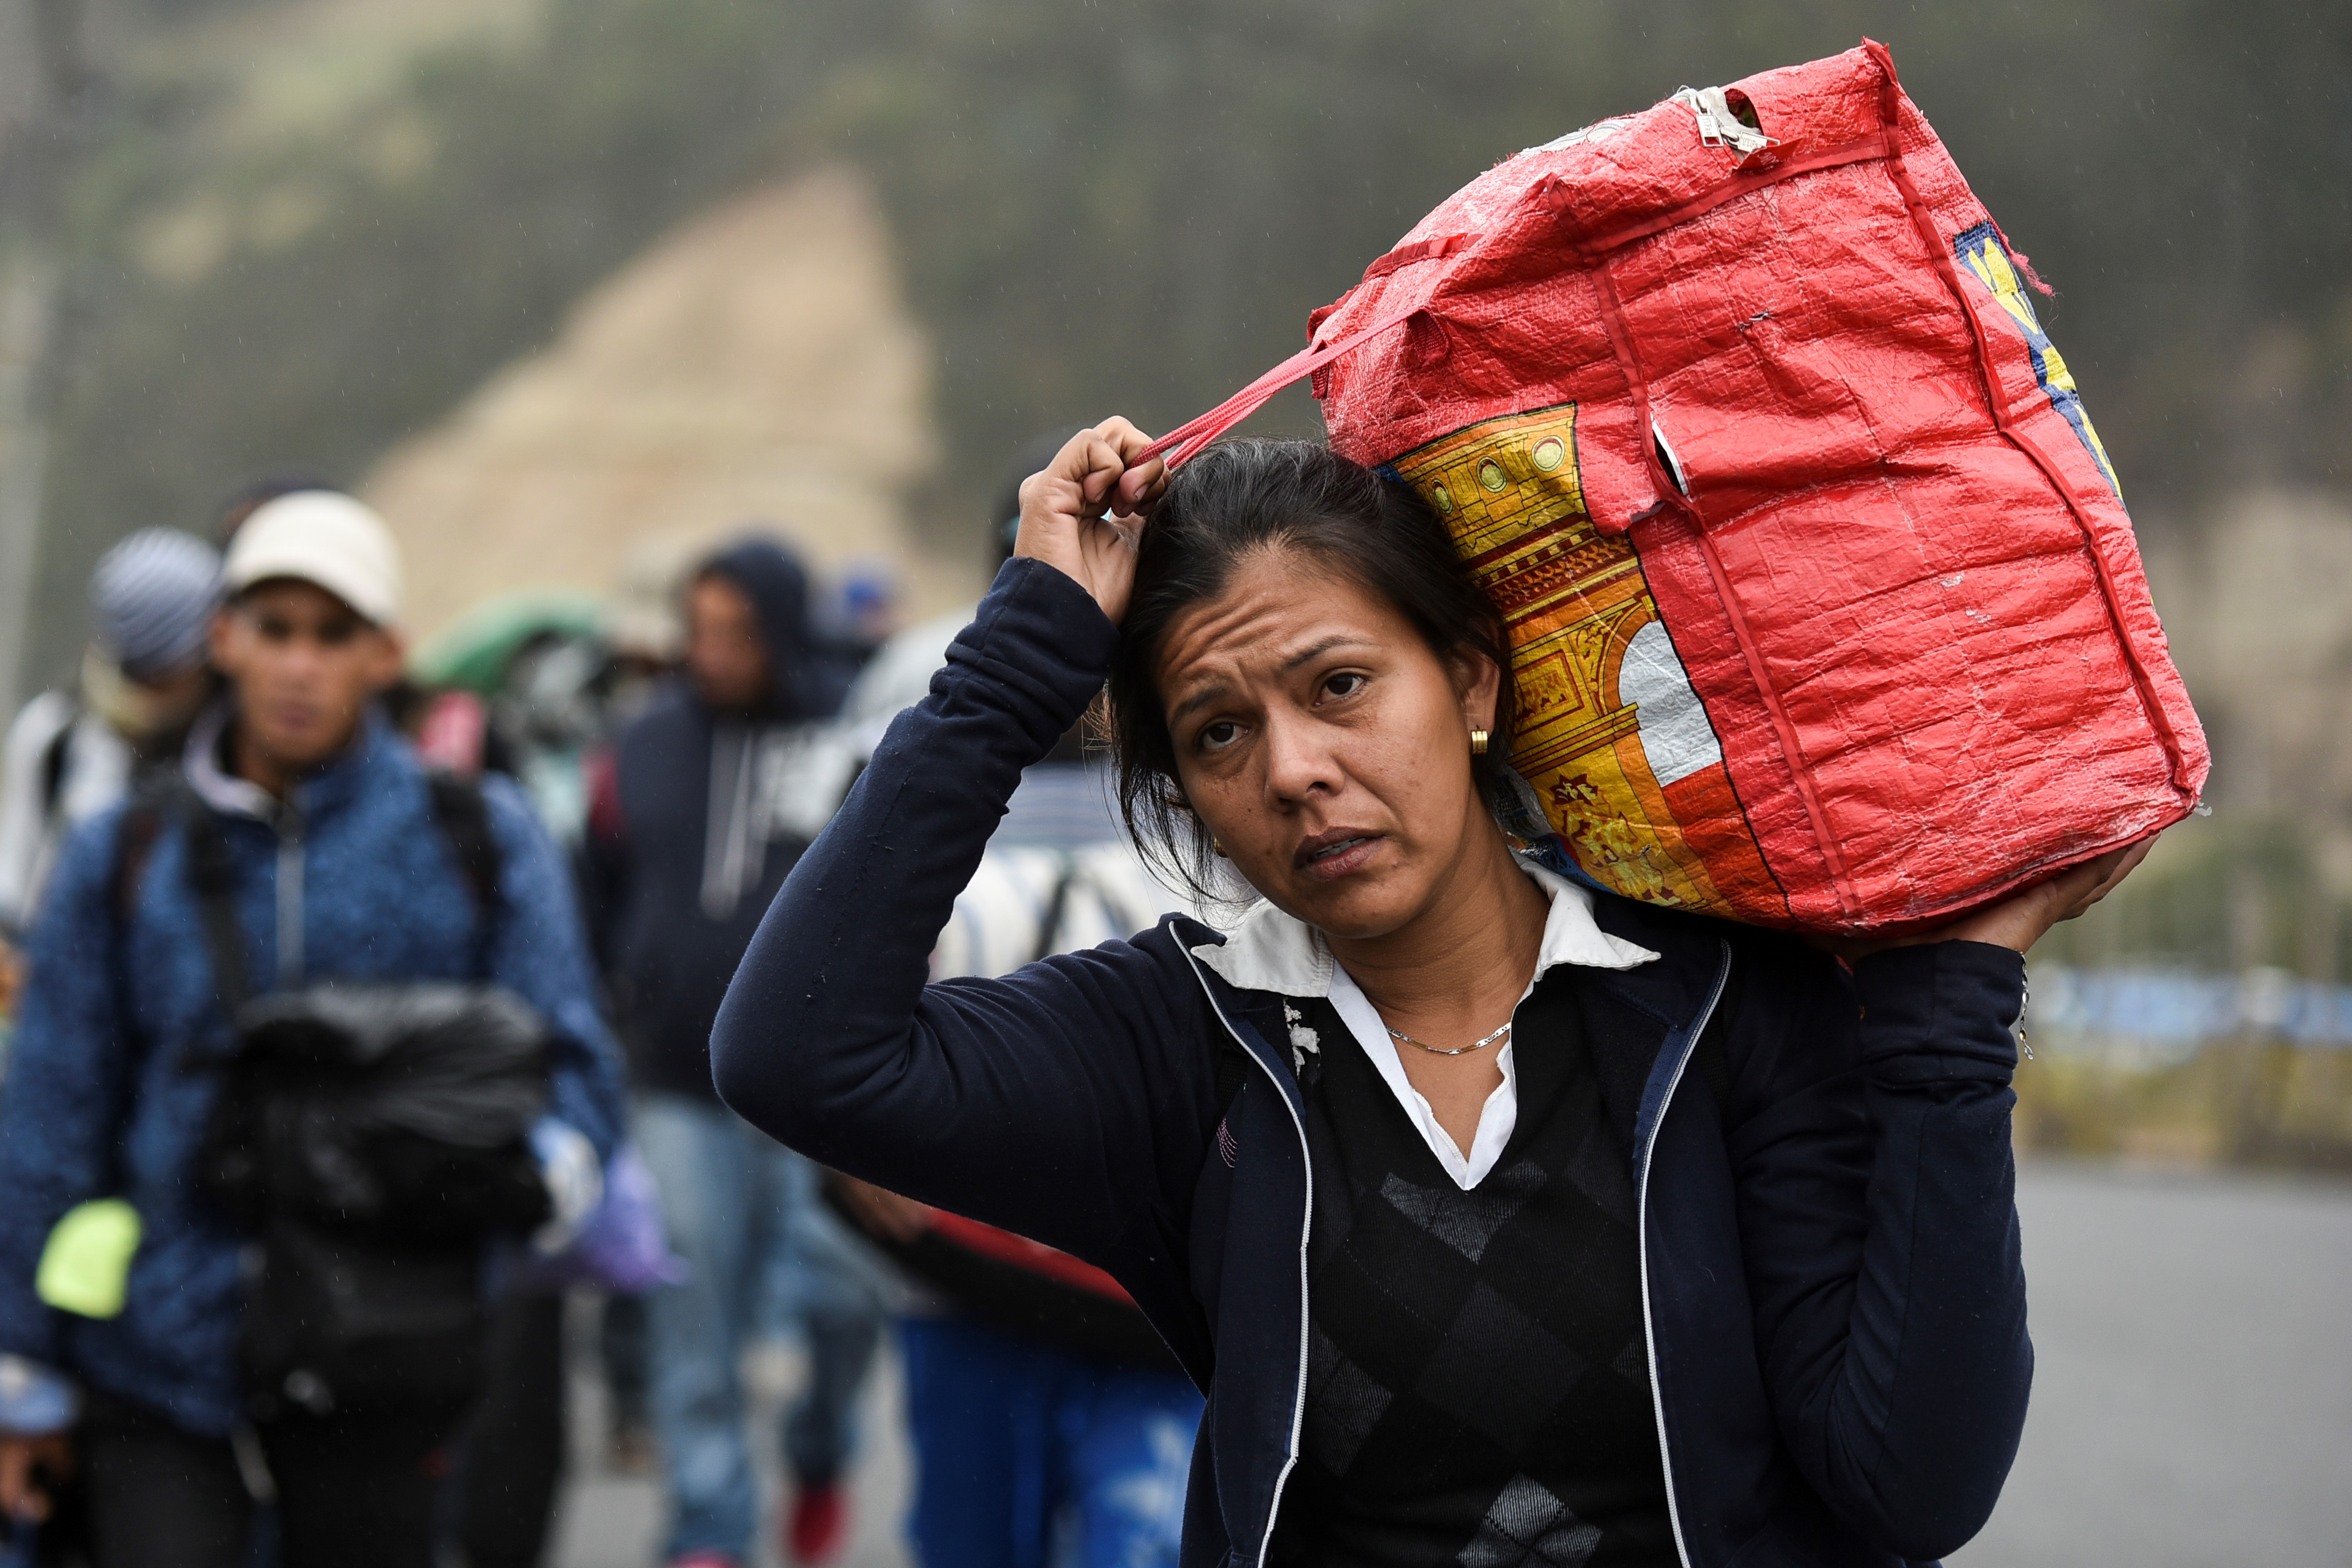 A Venezuelan migrant woman heading to Peru carries a bag as she walks along the Panamerican highway in Tulcan, Ecuador, after crossing from Colombia, on August 21, 2018. - Ecuador announced on August 16 that Venezuelans entering the country would need to show passports from August 18 onwards, a document many are not carrying. And Peru followed suit on August 17, announcing an identical measure due to begin on August 25. (Photo by Luis ROBAYO / AFP)  (Photo credit should read LUIS ROBAYO/AFP/Getty Images)